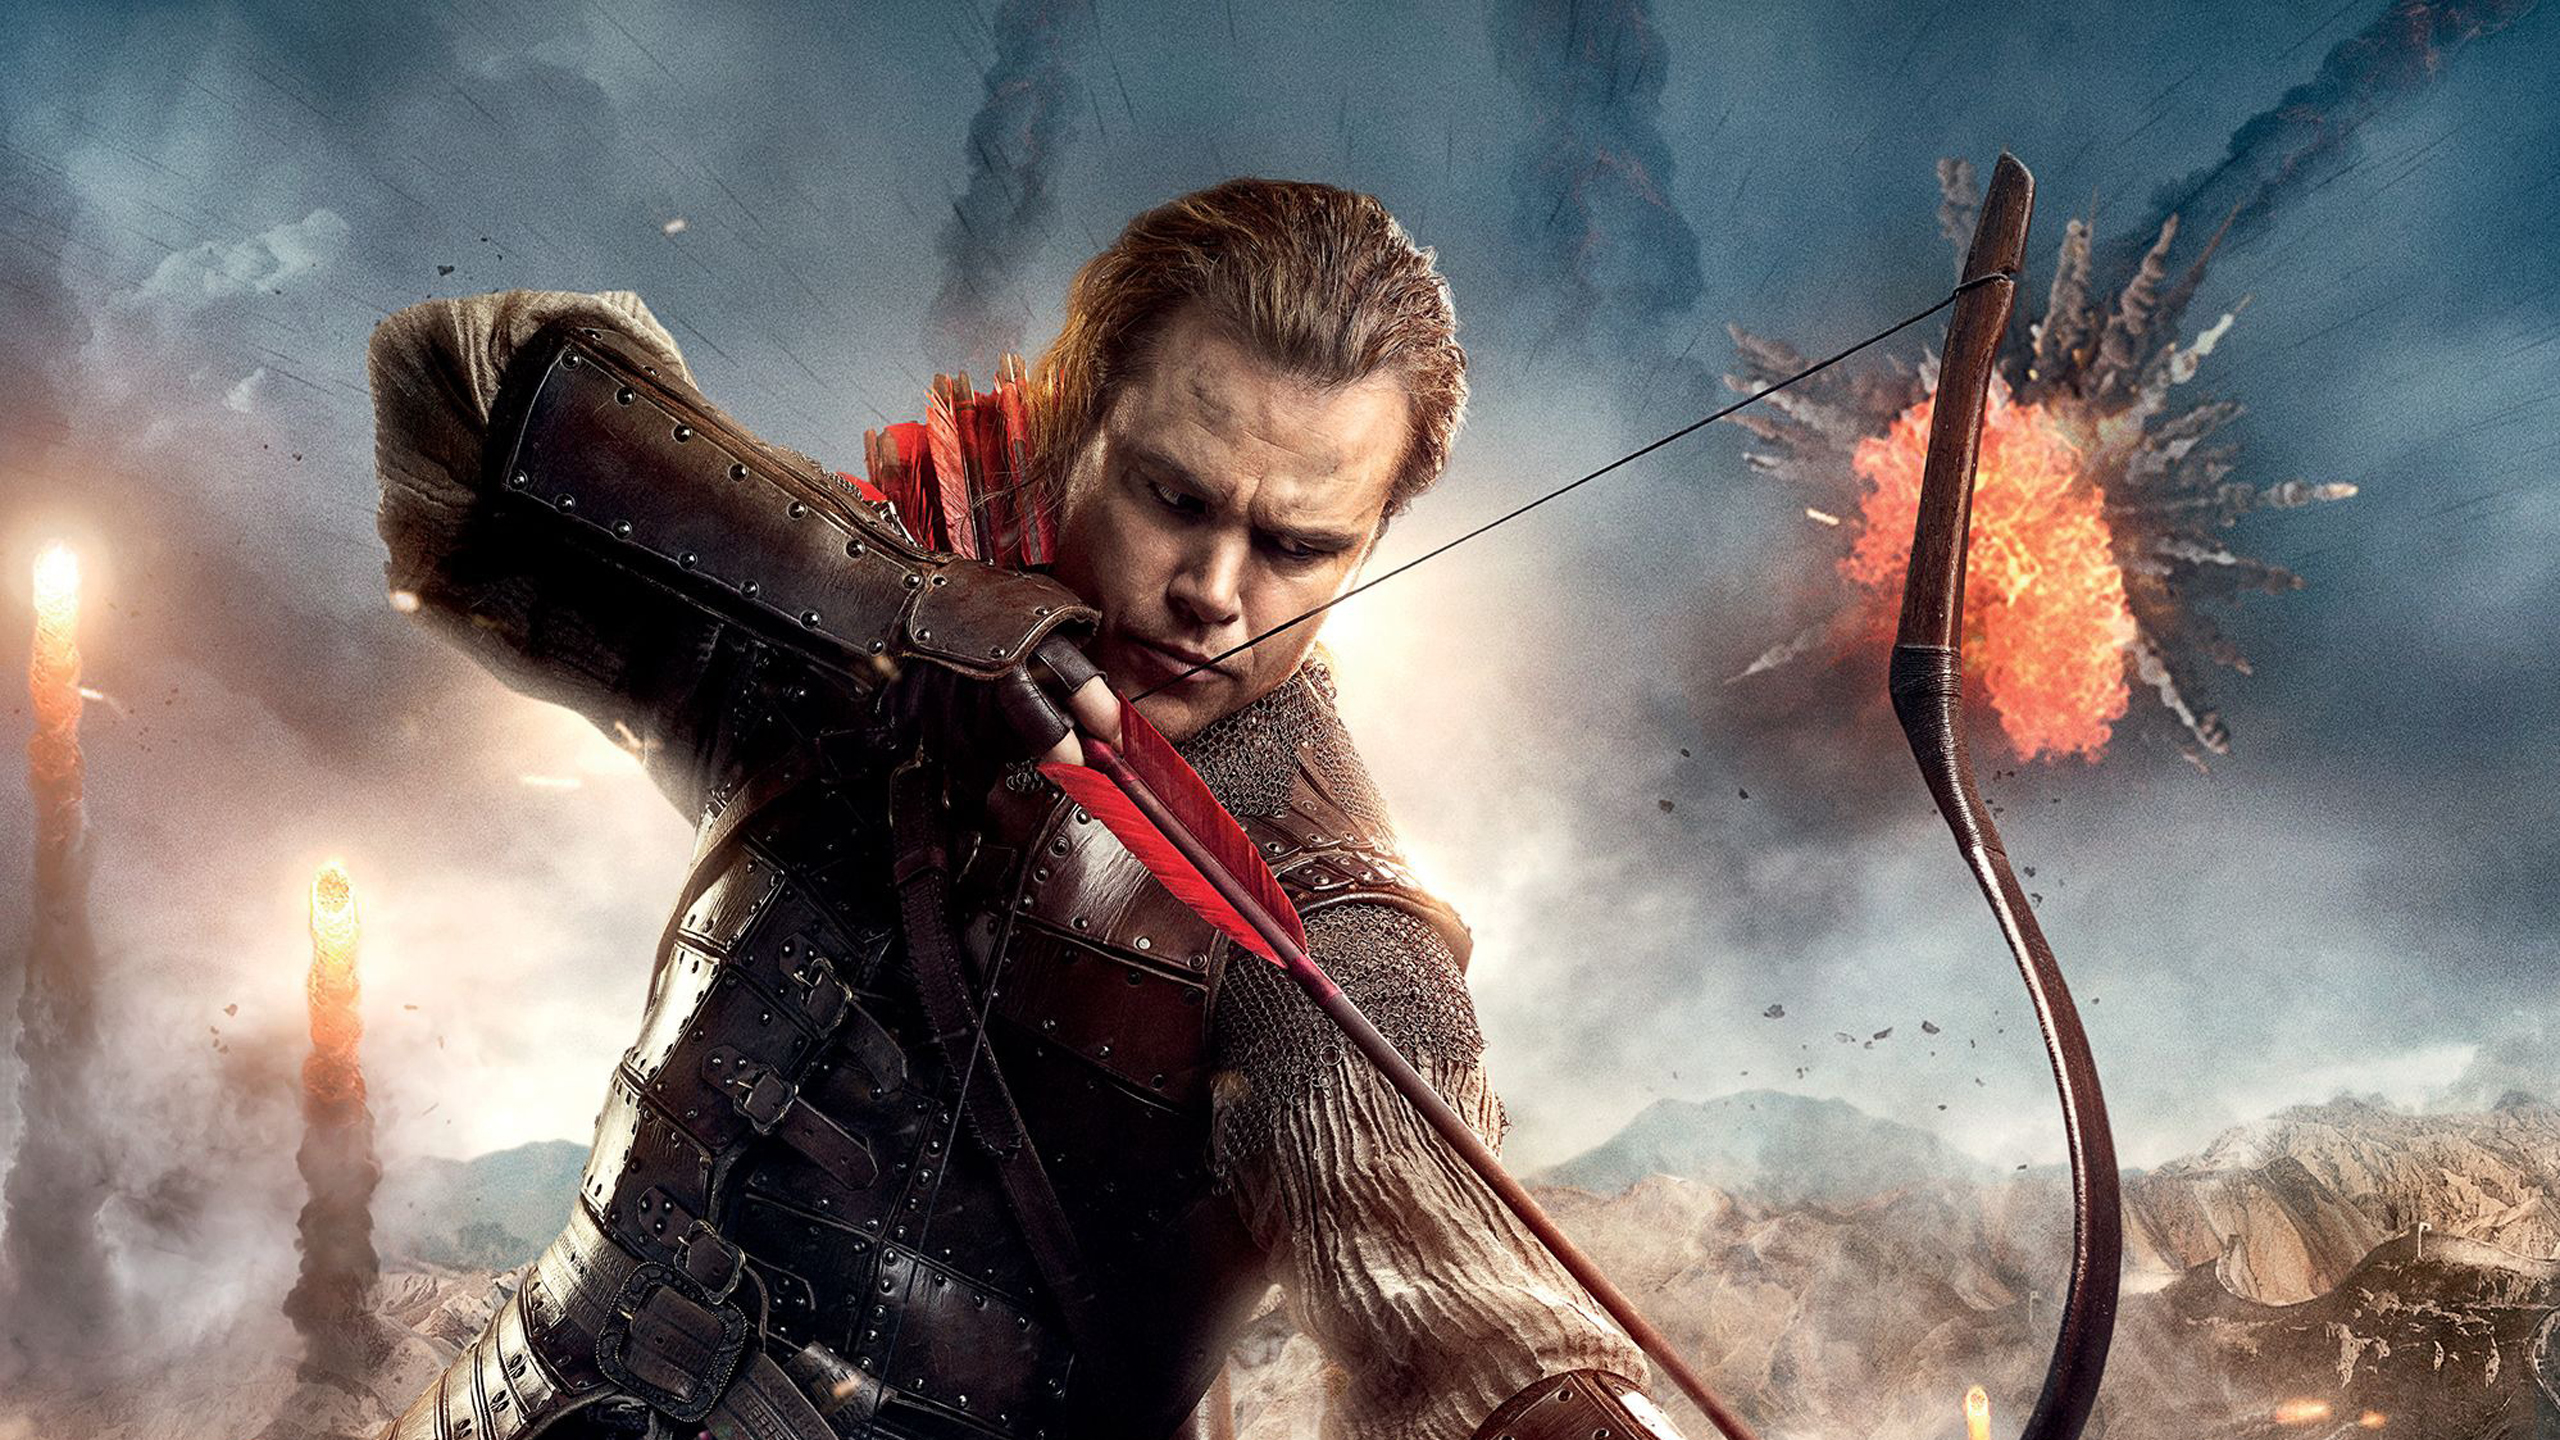 The Great Wall Matt Damon 2017 Movie Hd Movies 4k Wallpapers